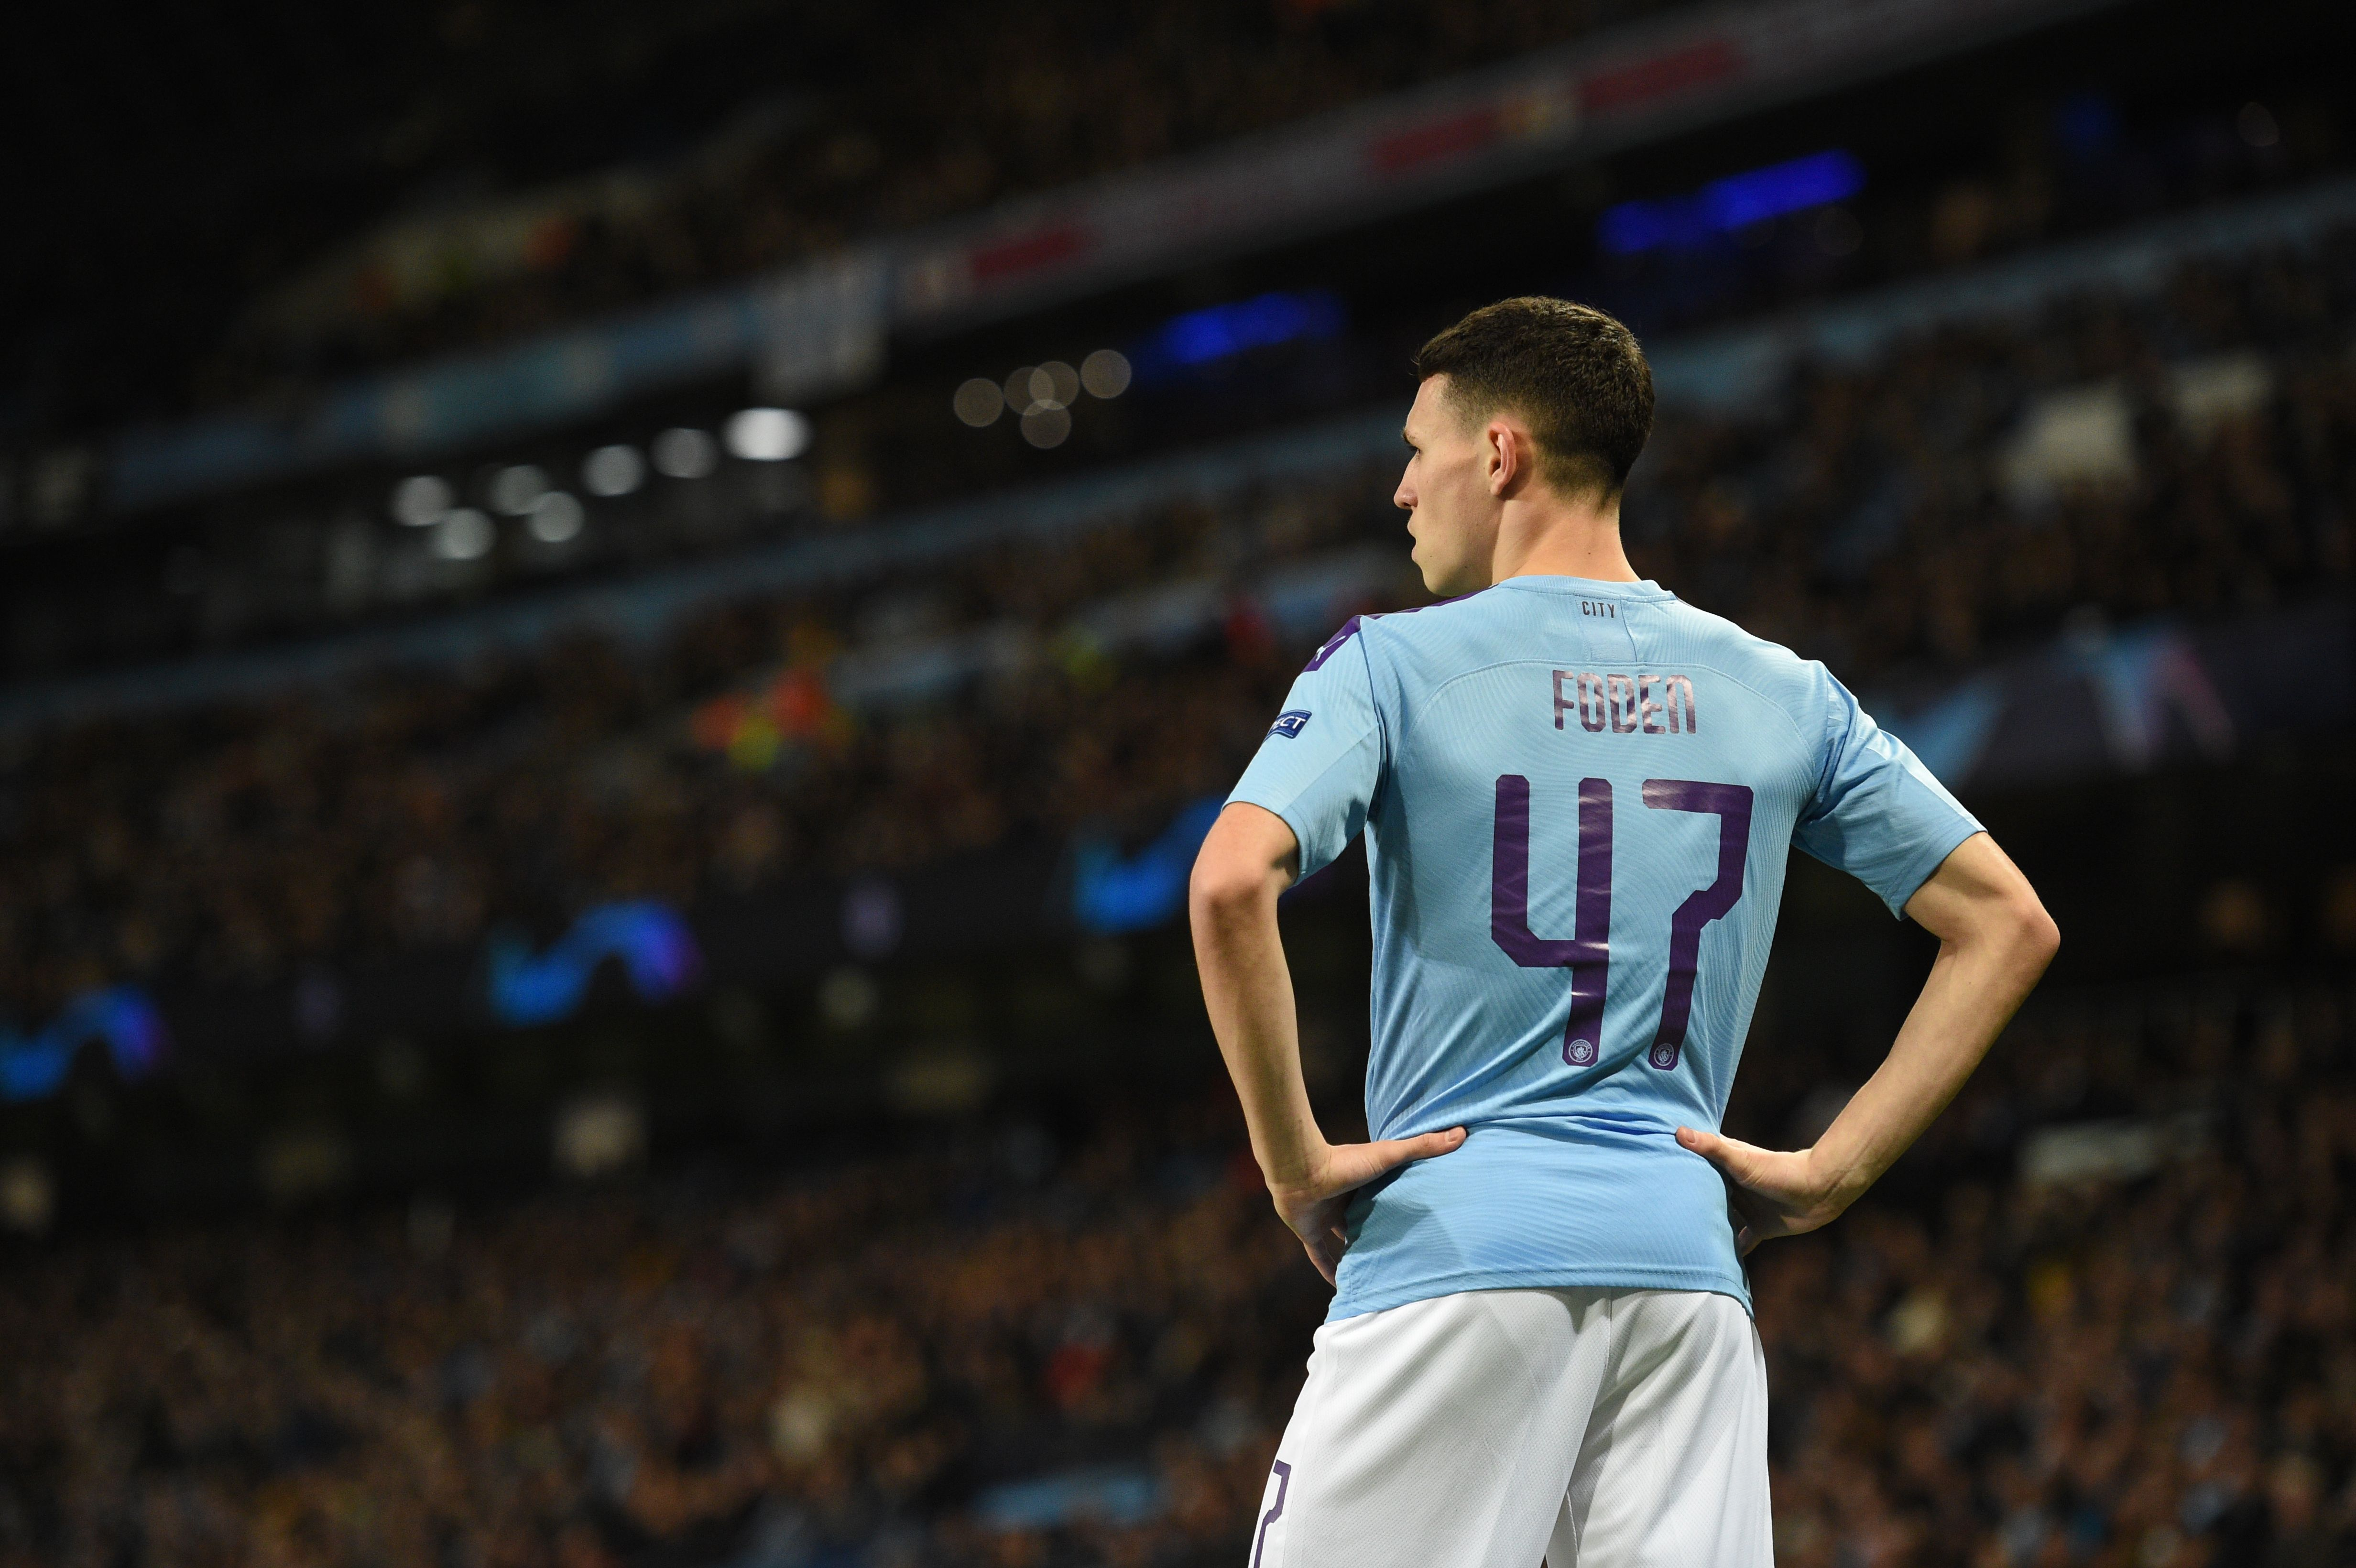 Foden will get a chance to impress against Marseille. (Photo by Oli Scarff/AFP via Getty Images)